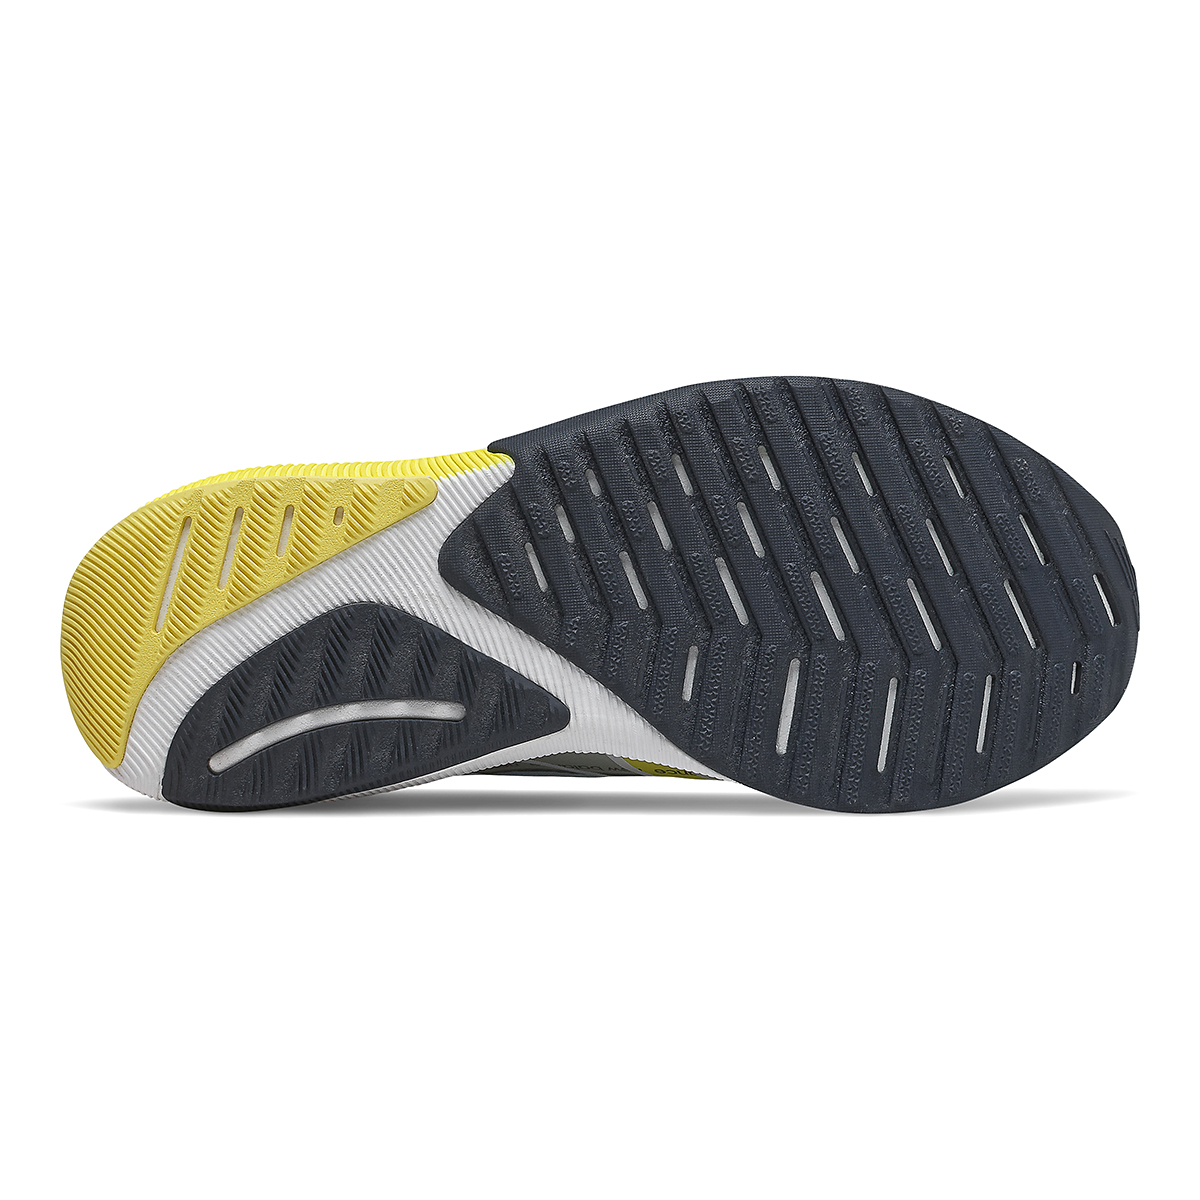 Women's New Balance Fuelcell Propel V2 Running Shoe - Color: Uv Glo/First Light/Eclipse - Size: 5 - Width: Regular, Uv Glo/First Light/Eclipse, large, image 4